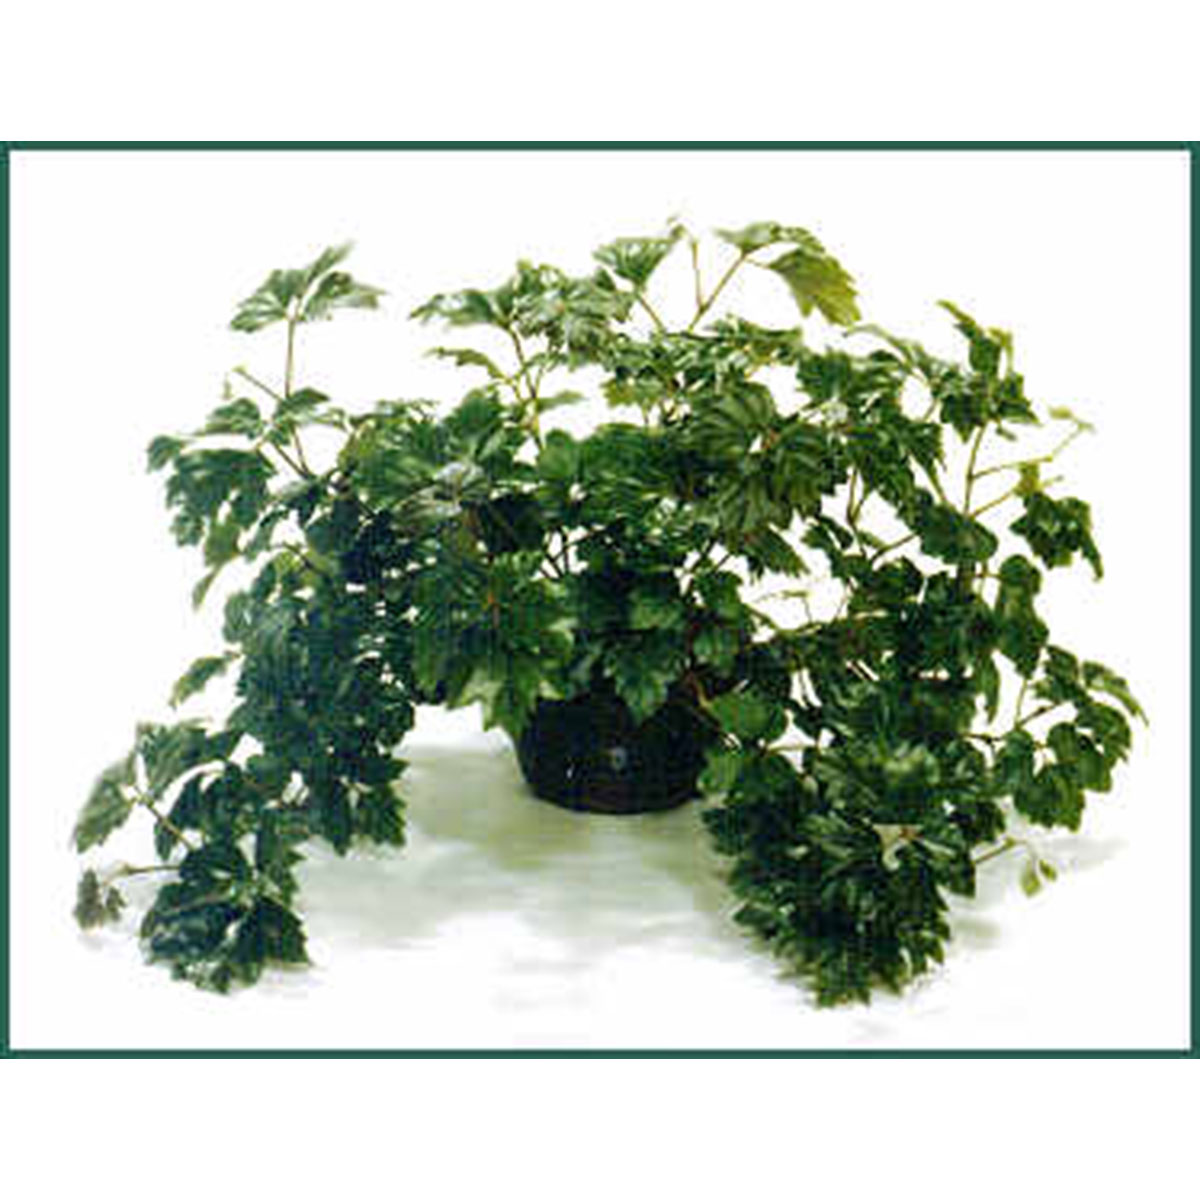 Our top 5 pet friendly indoor plants hip hound for Easy houseplants safe for pets